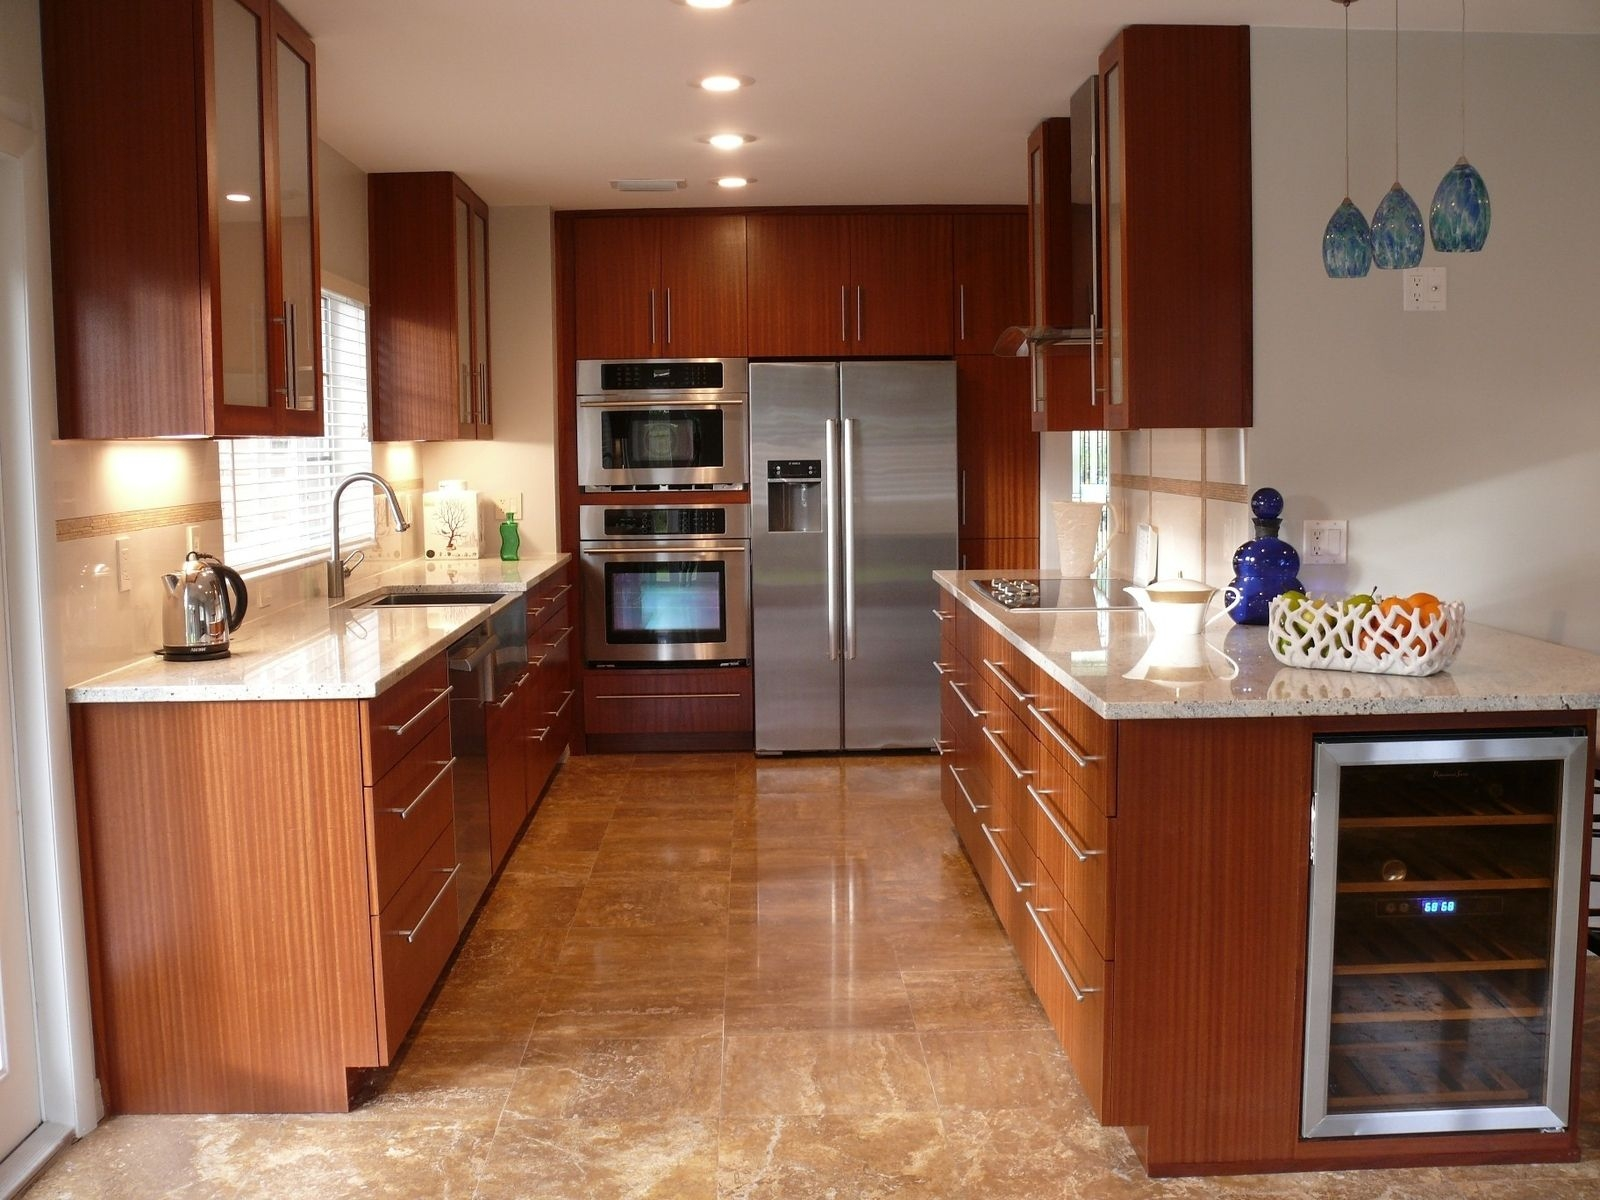 Mahogany Kitchen Cabinets Design1600 X 1200